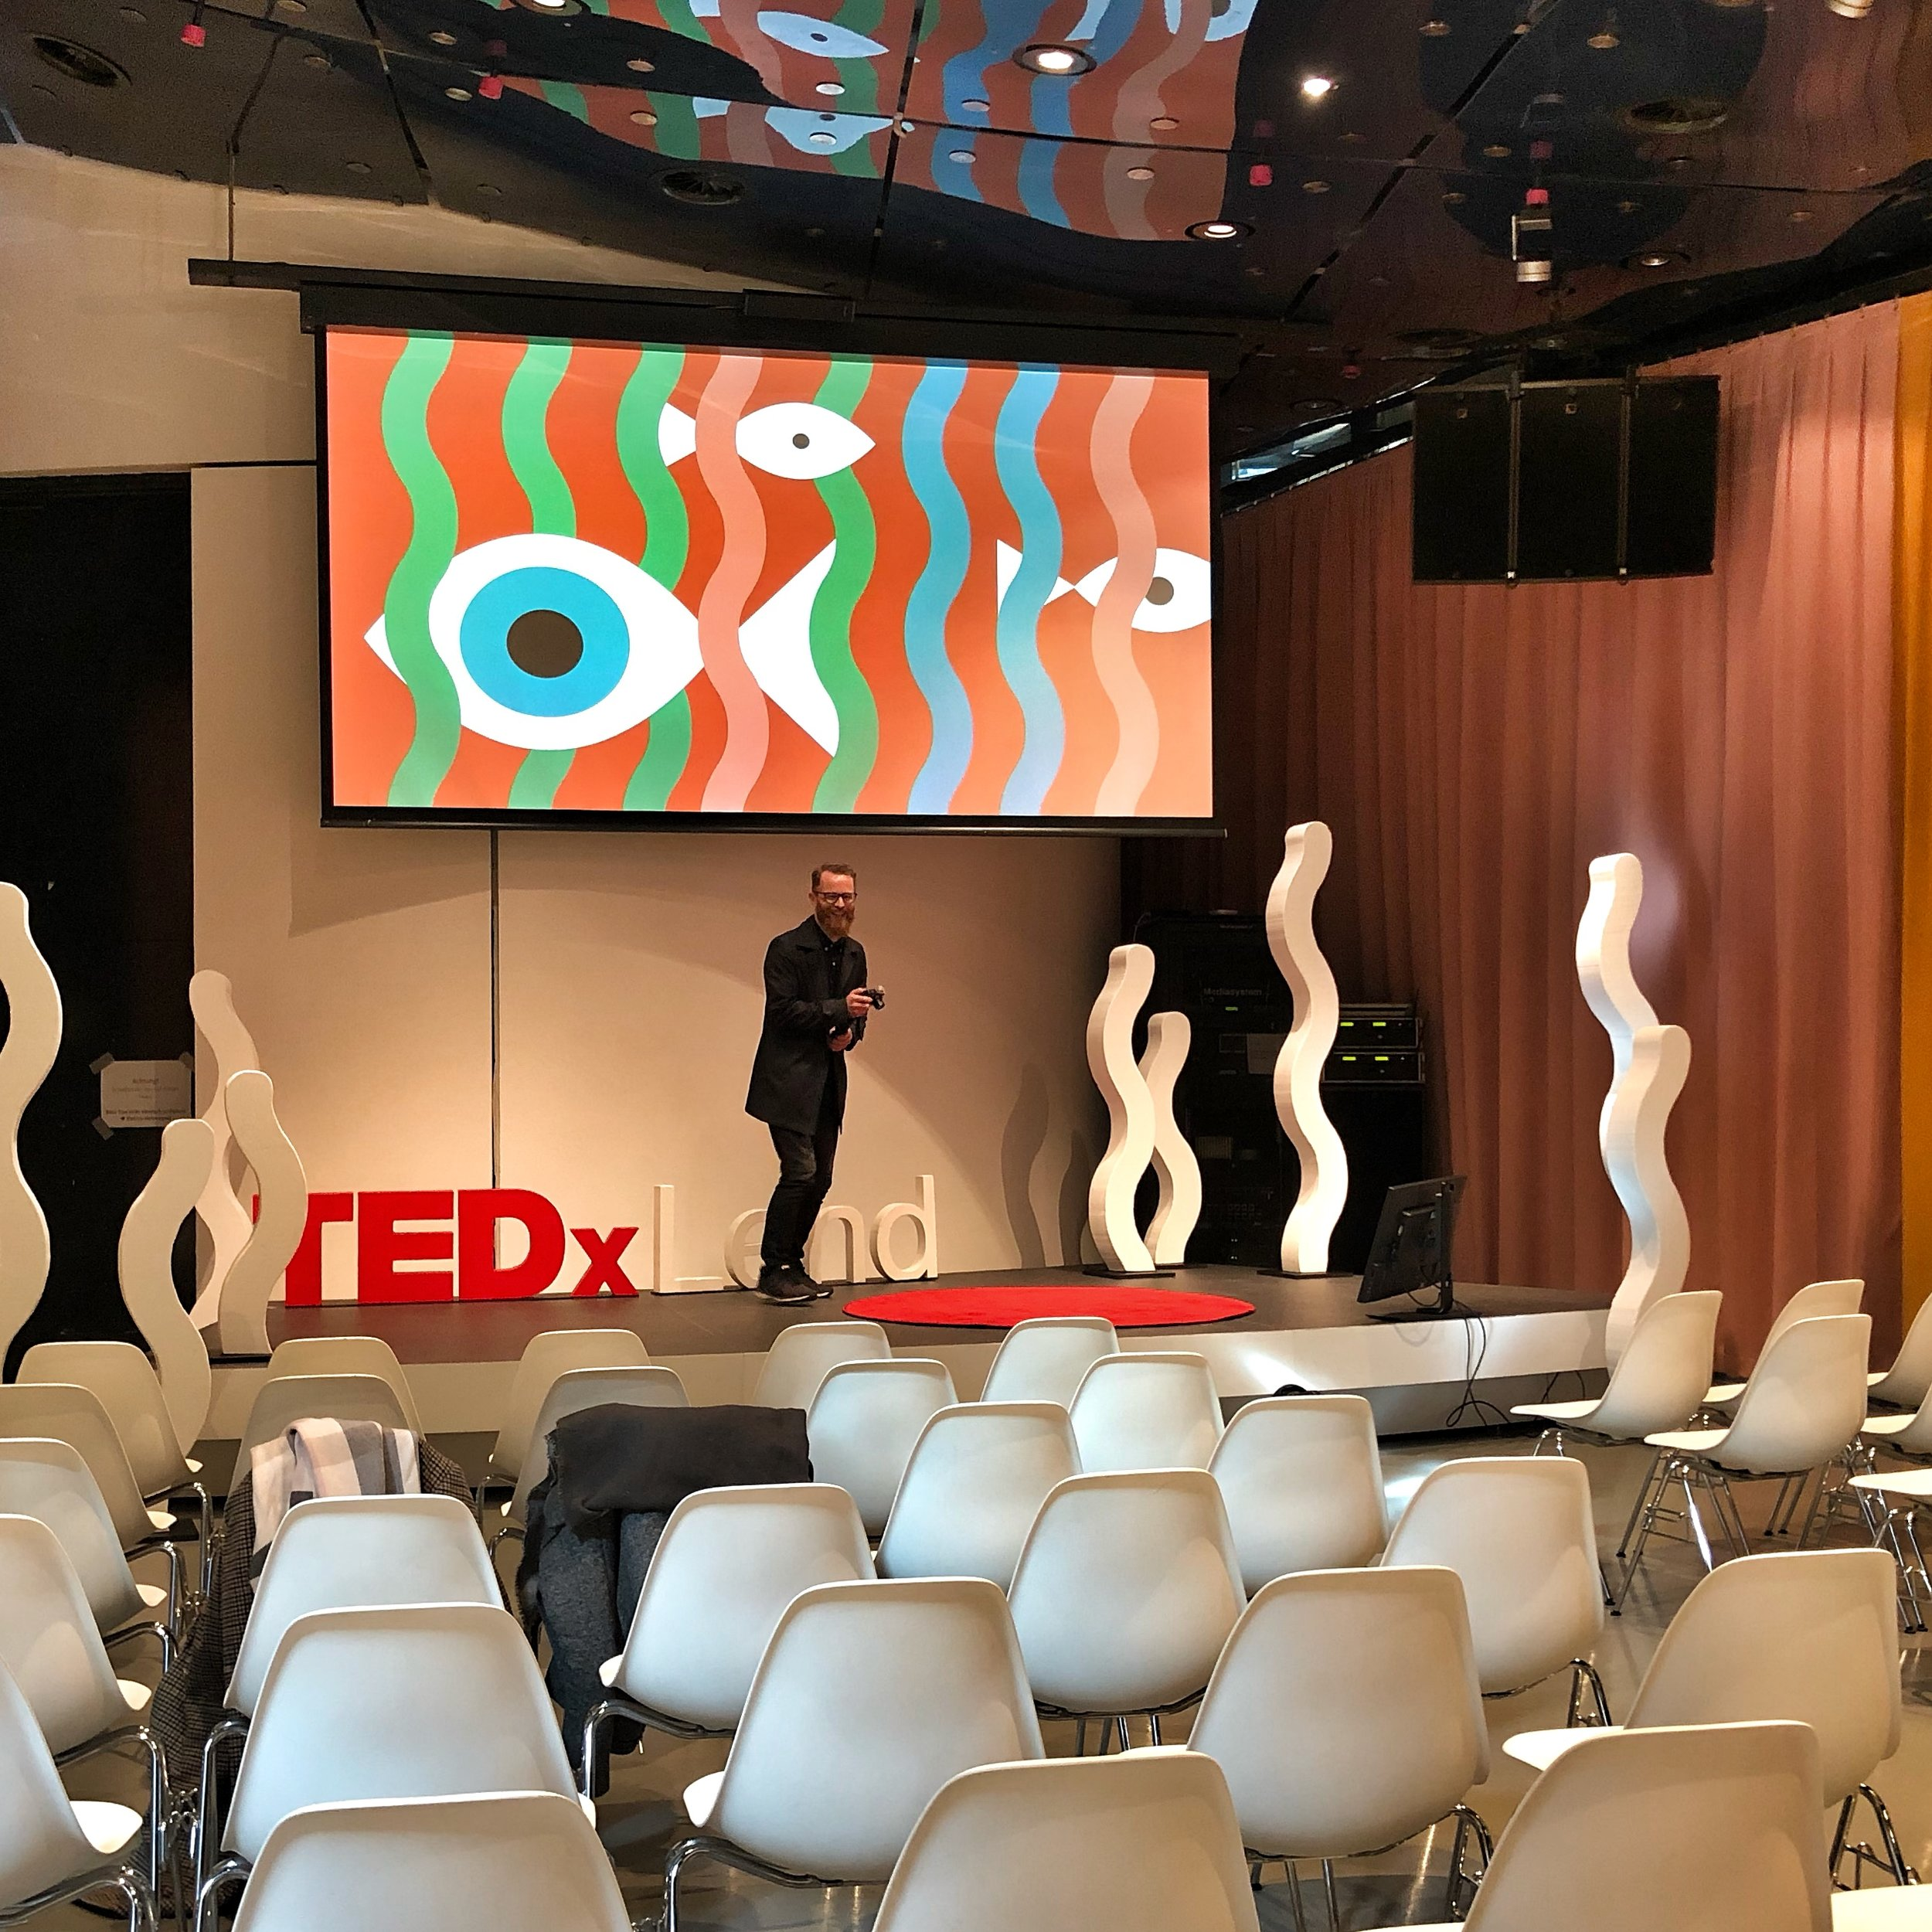 tedxlend